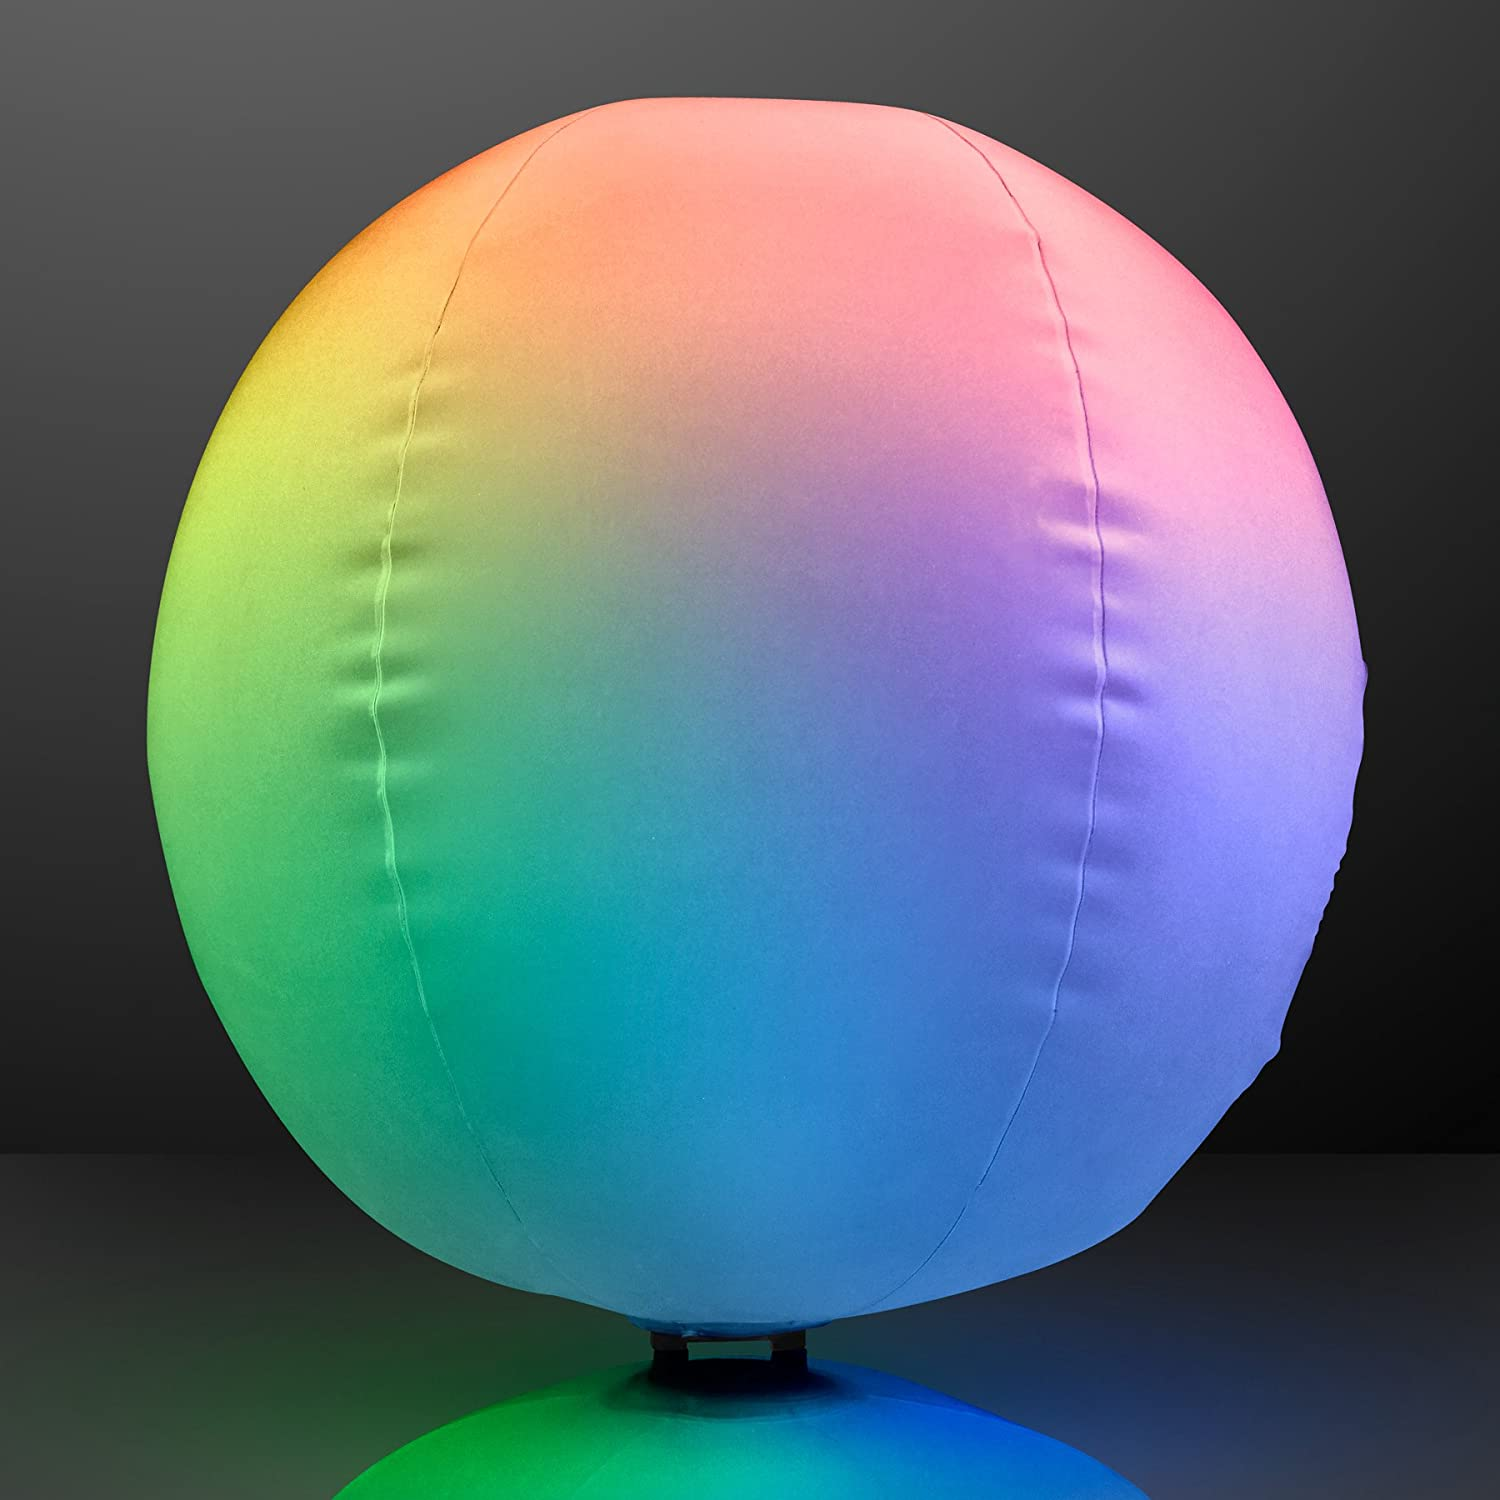 Amazon Light Up Beach Ball with Color Changing LED Lights – Beach Ball Party Invitations